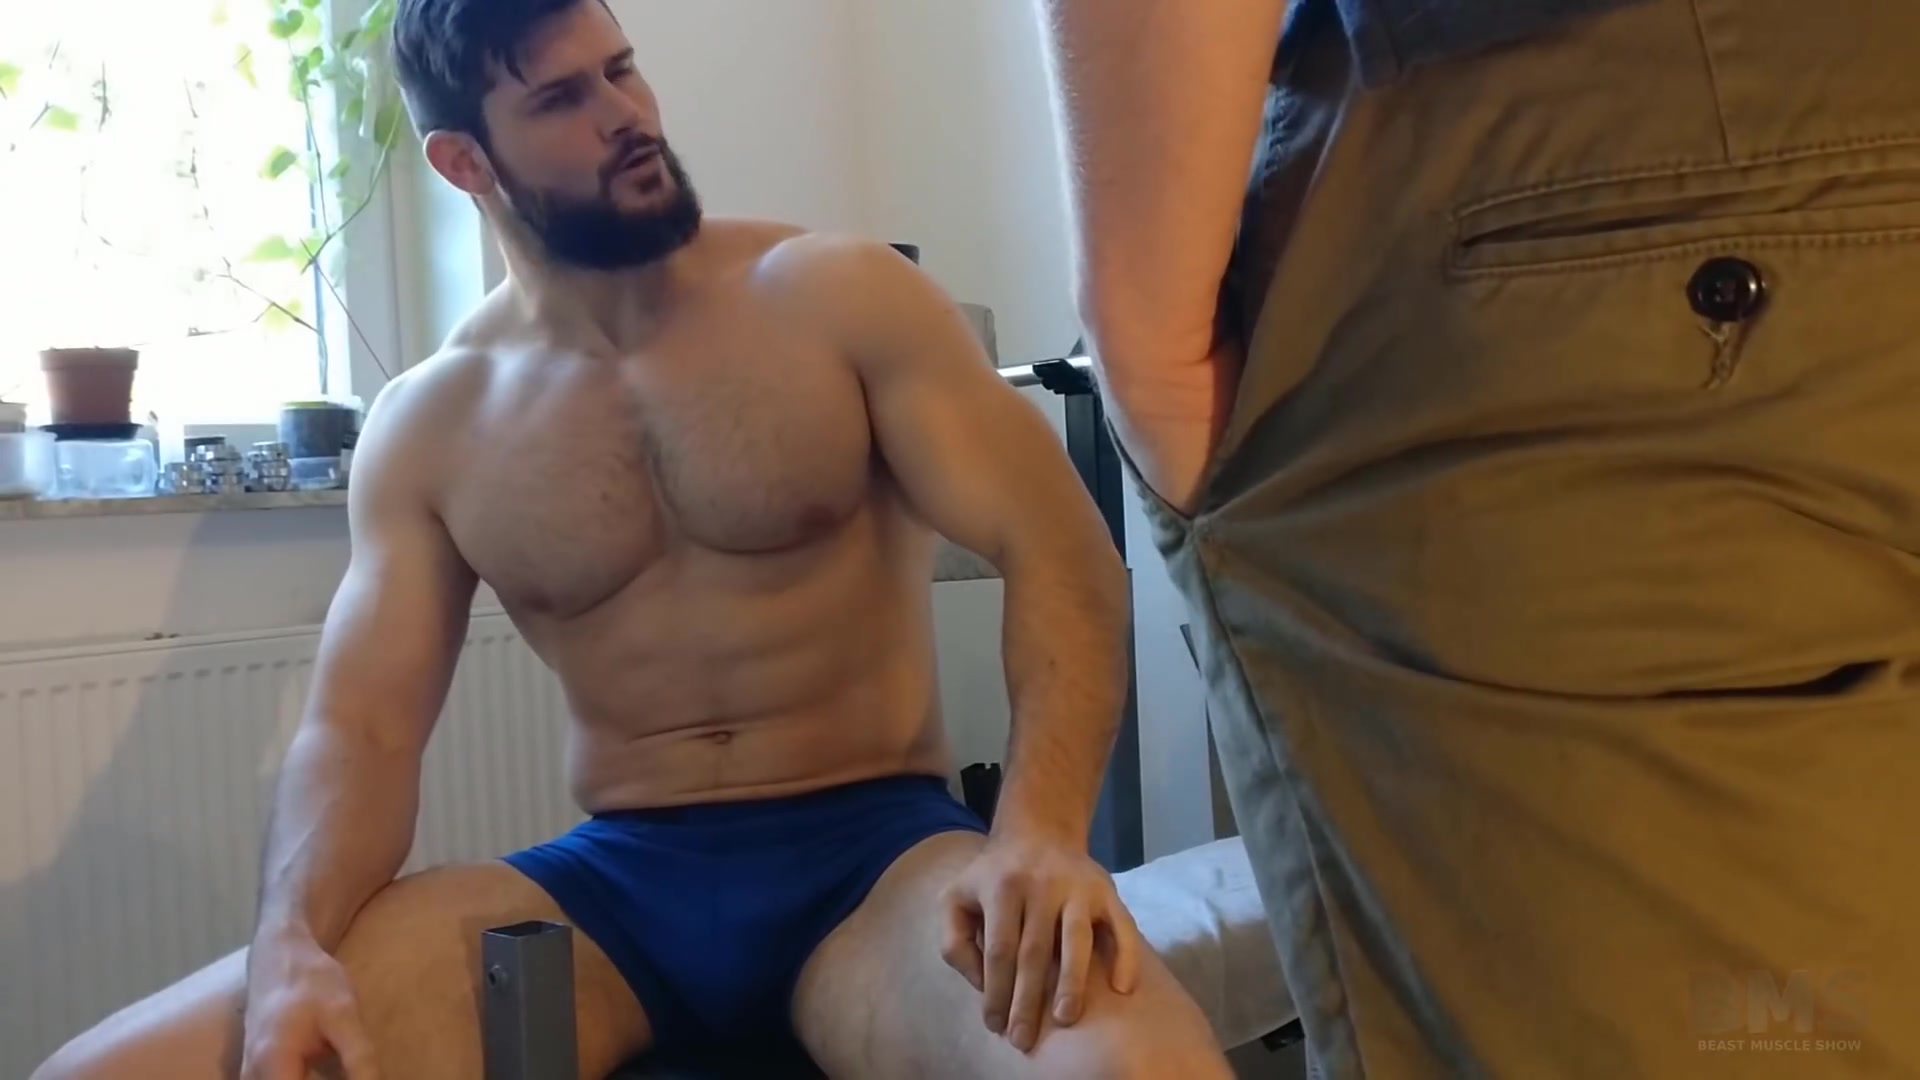 Muscle Video Gay muscle worship - video 6 - thisvid